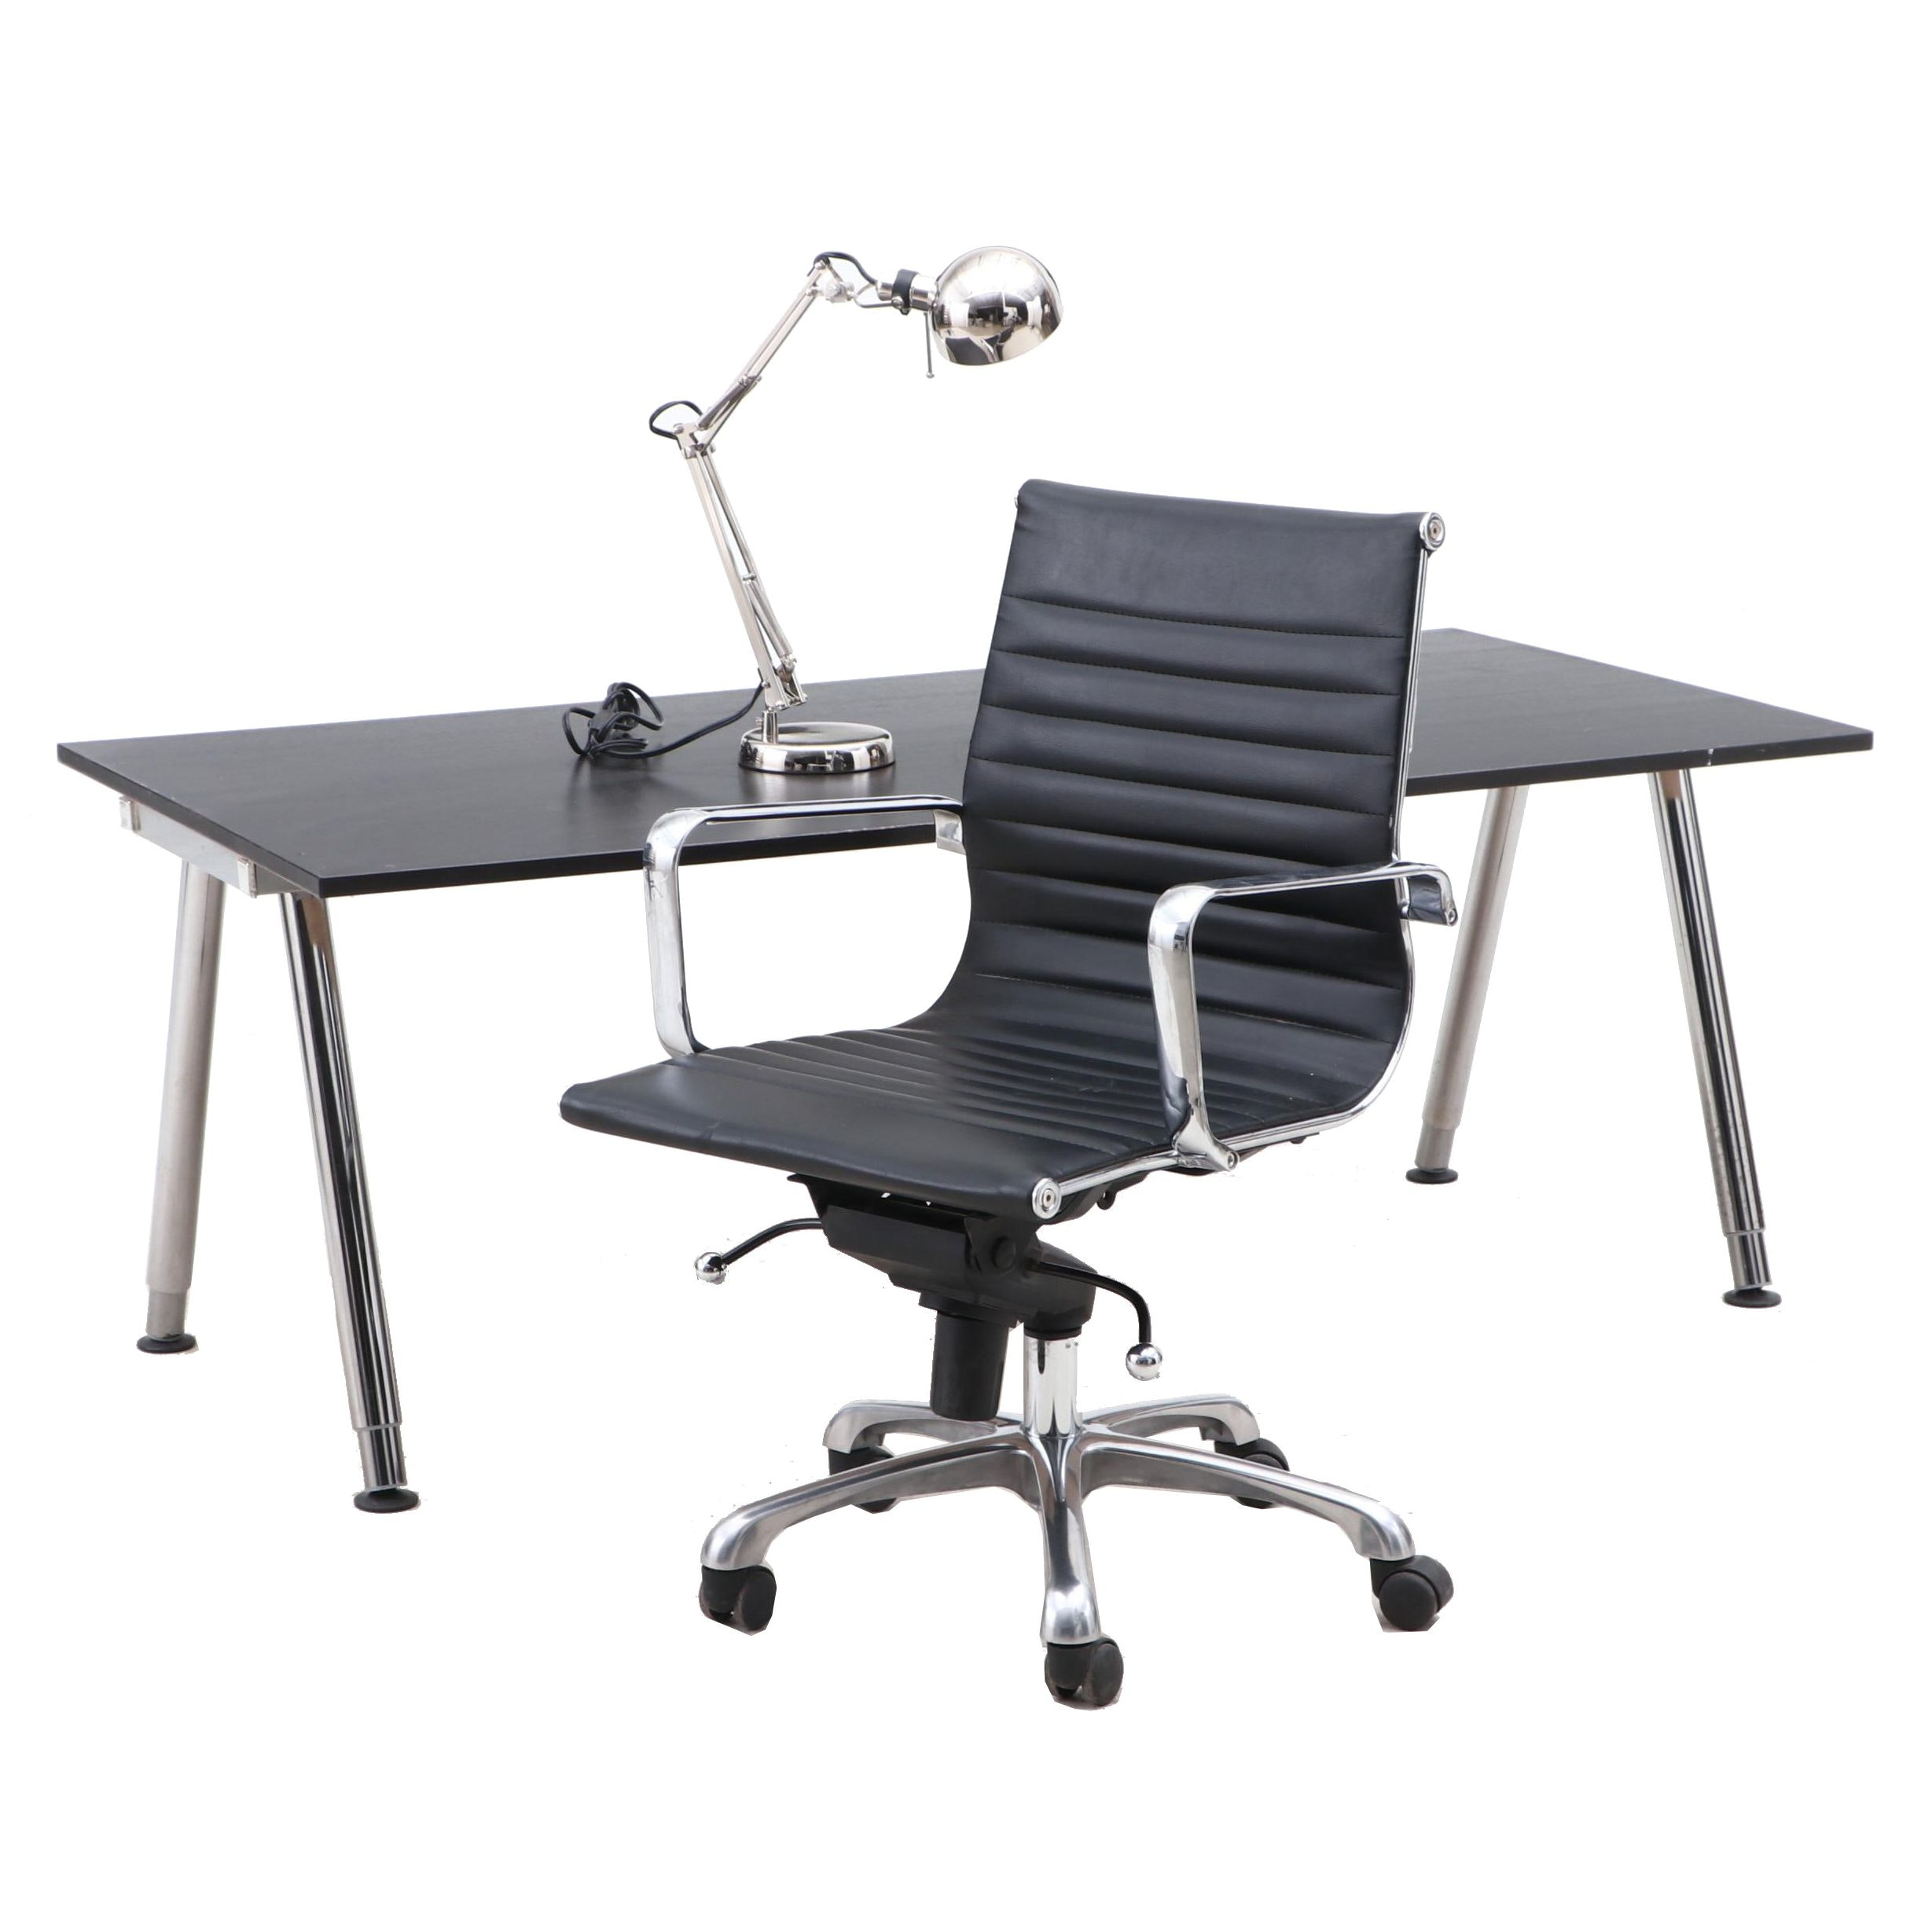 Adjustable Desk with Chair and Task Lamp